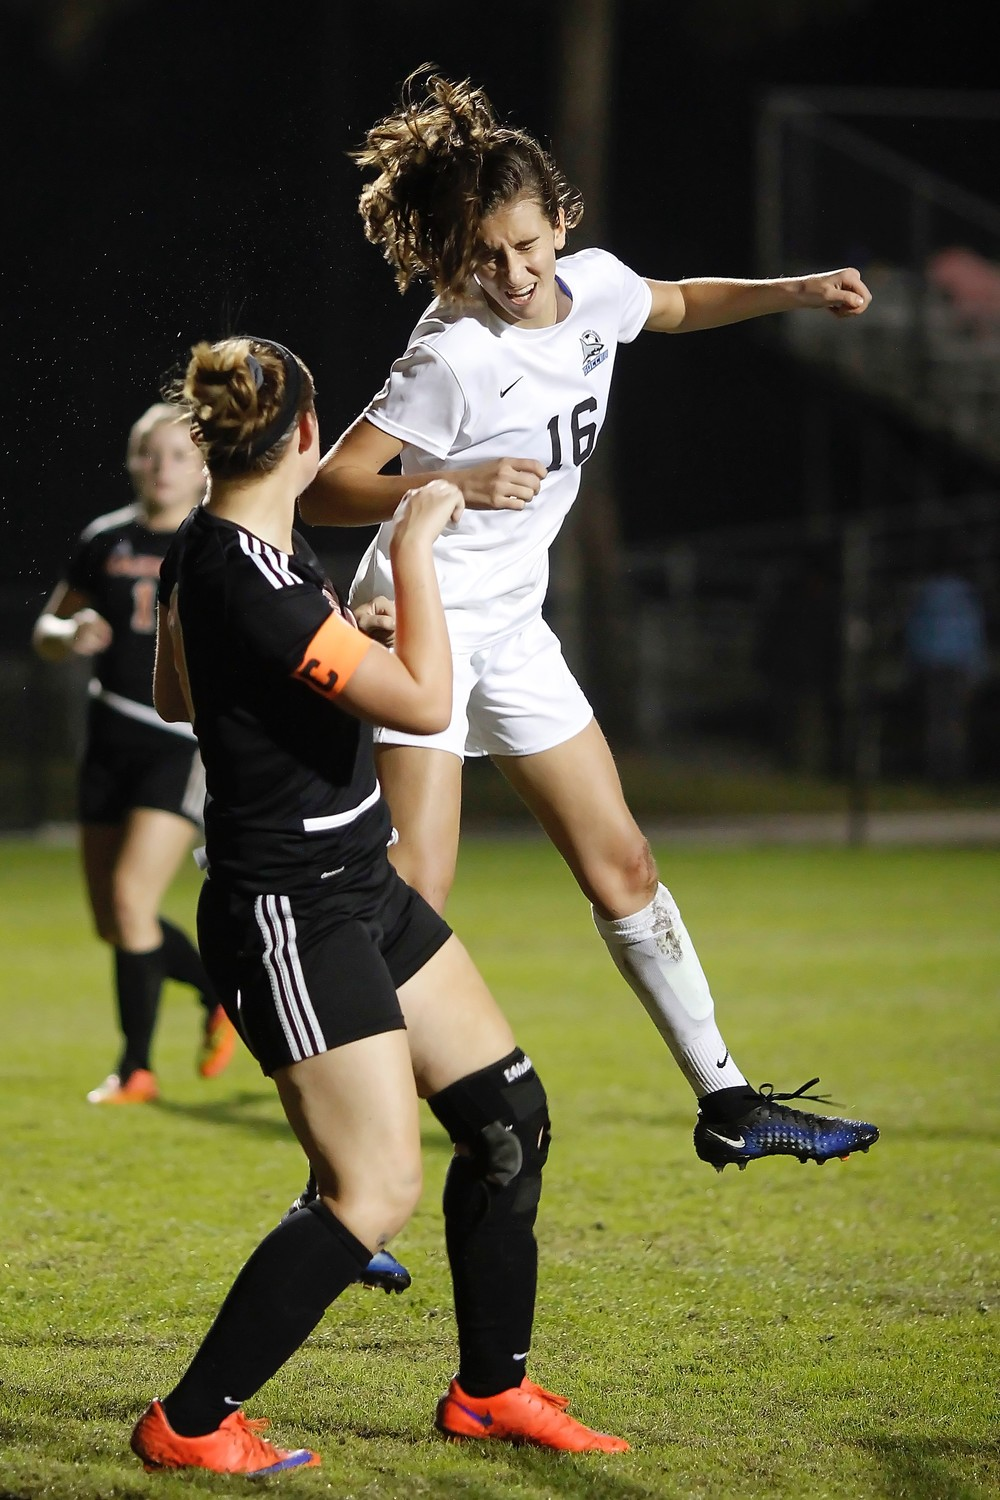 Julia Deal heads Piper Dotsikas' corner kick into the goal.